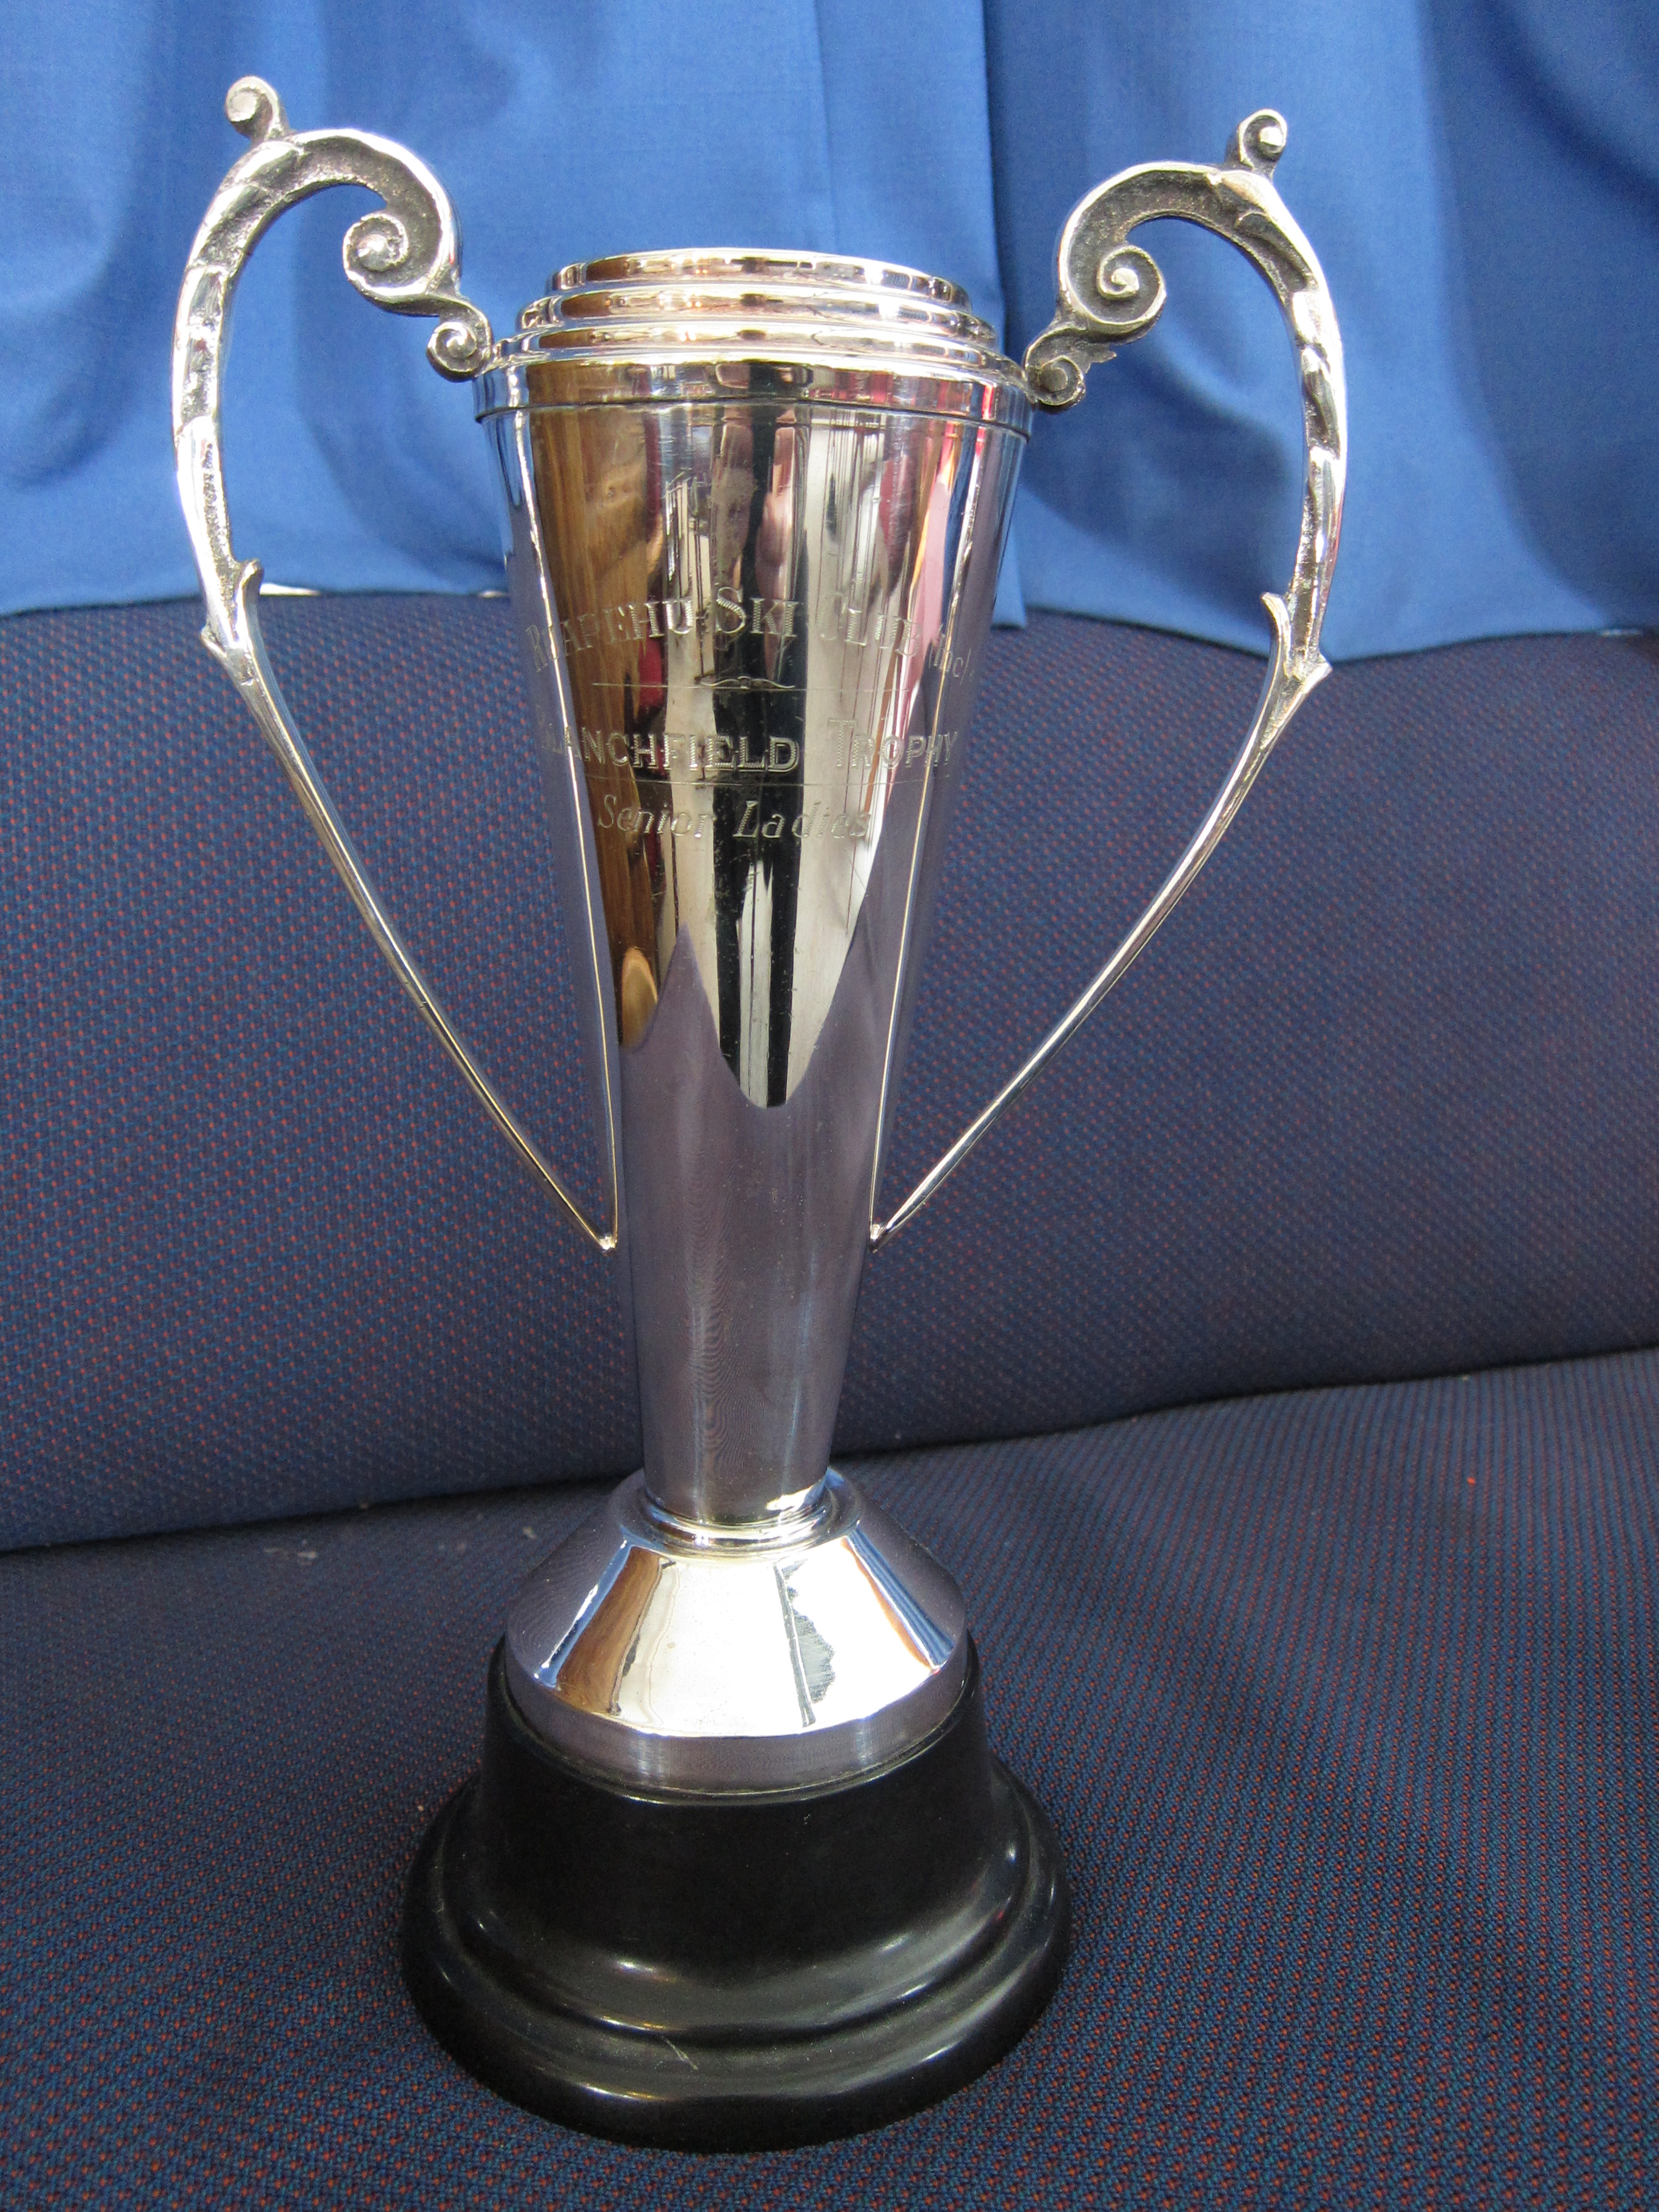 Blanchfield_Trophy.JPG